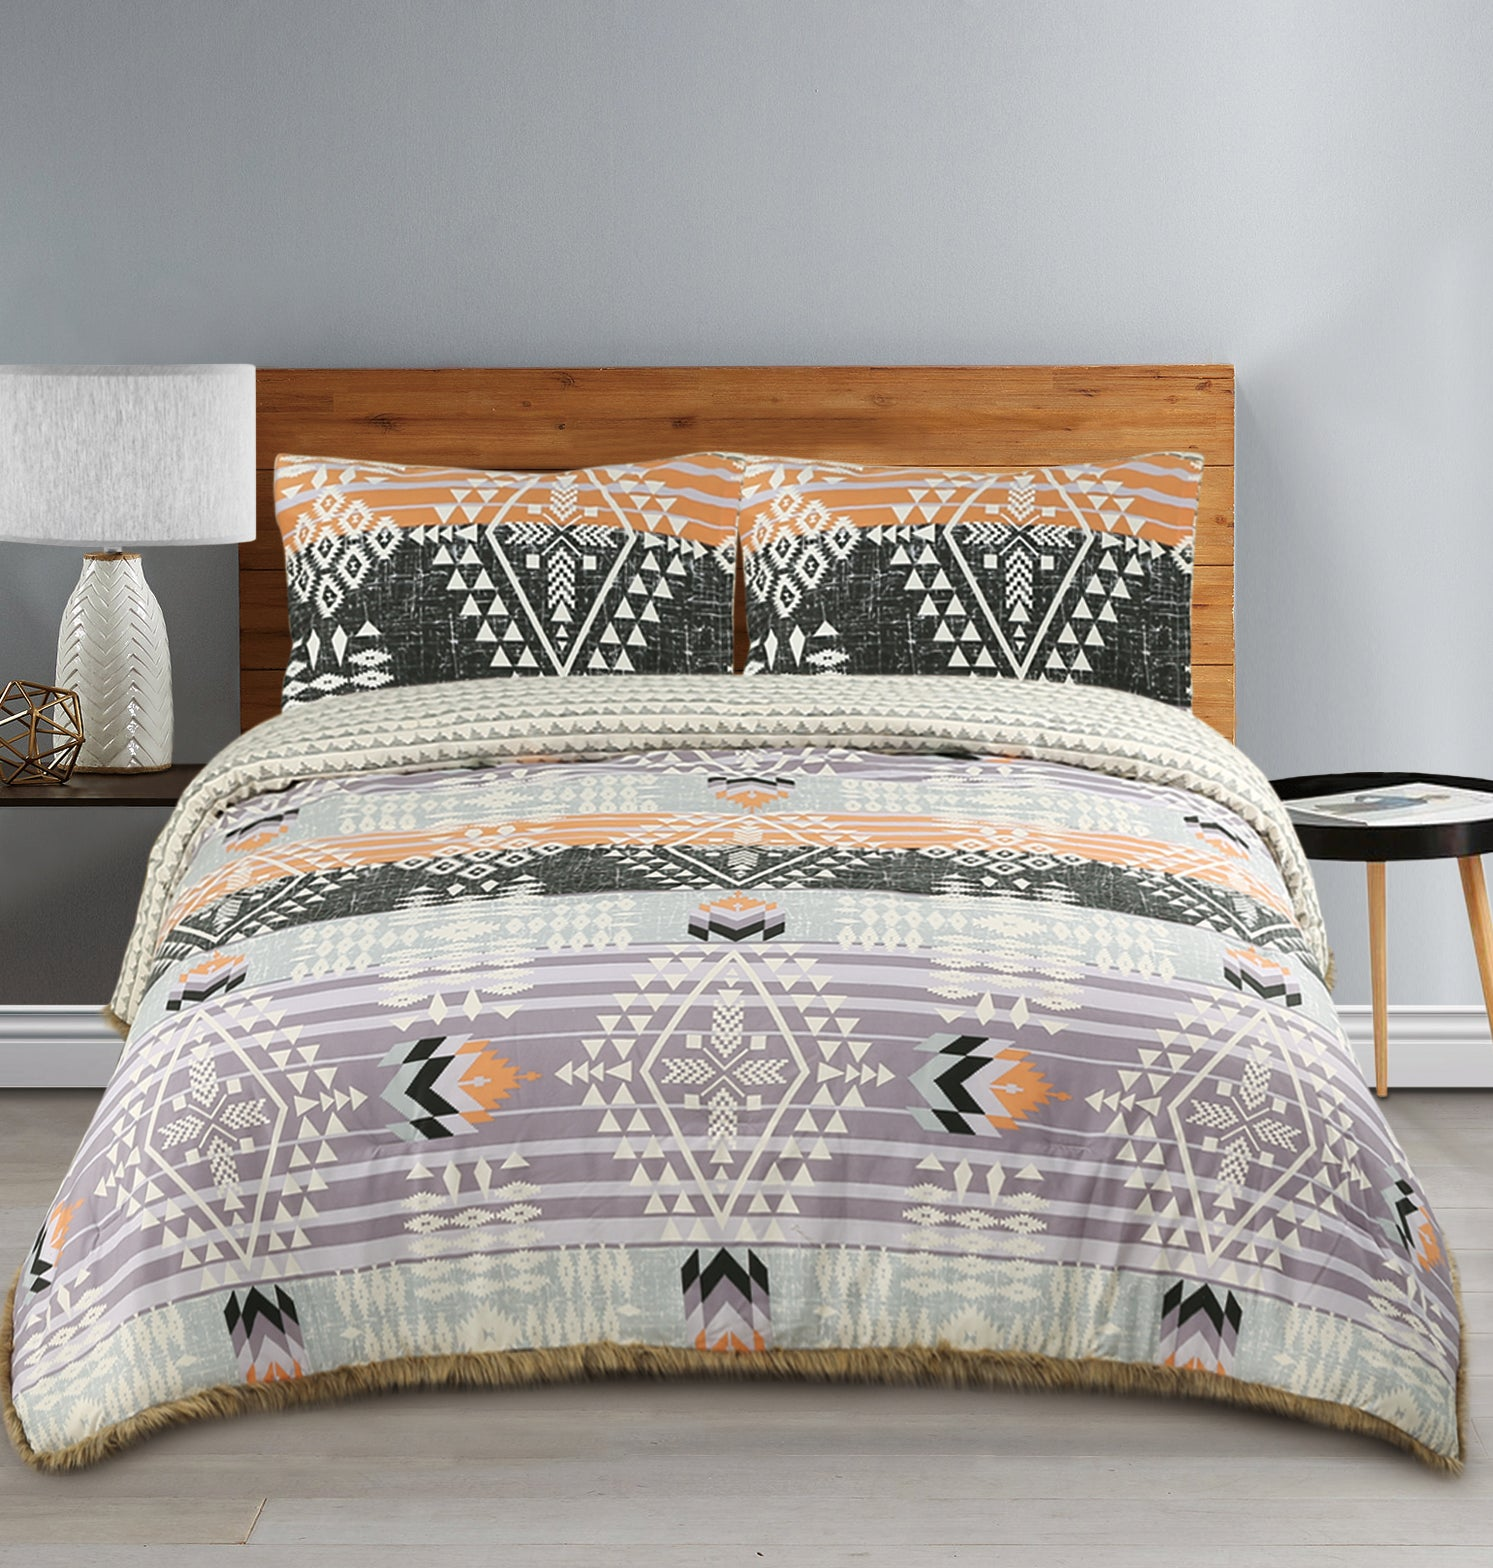 Muk Luks Bohemian Style Comforter Set With Fur Trim & Matching Shams, Peach and Purple